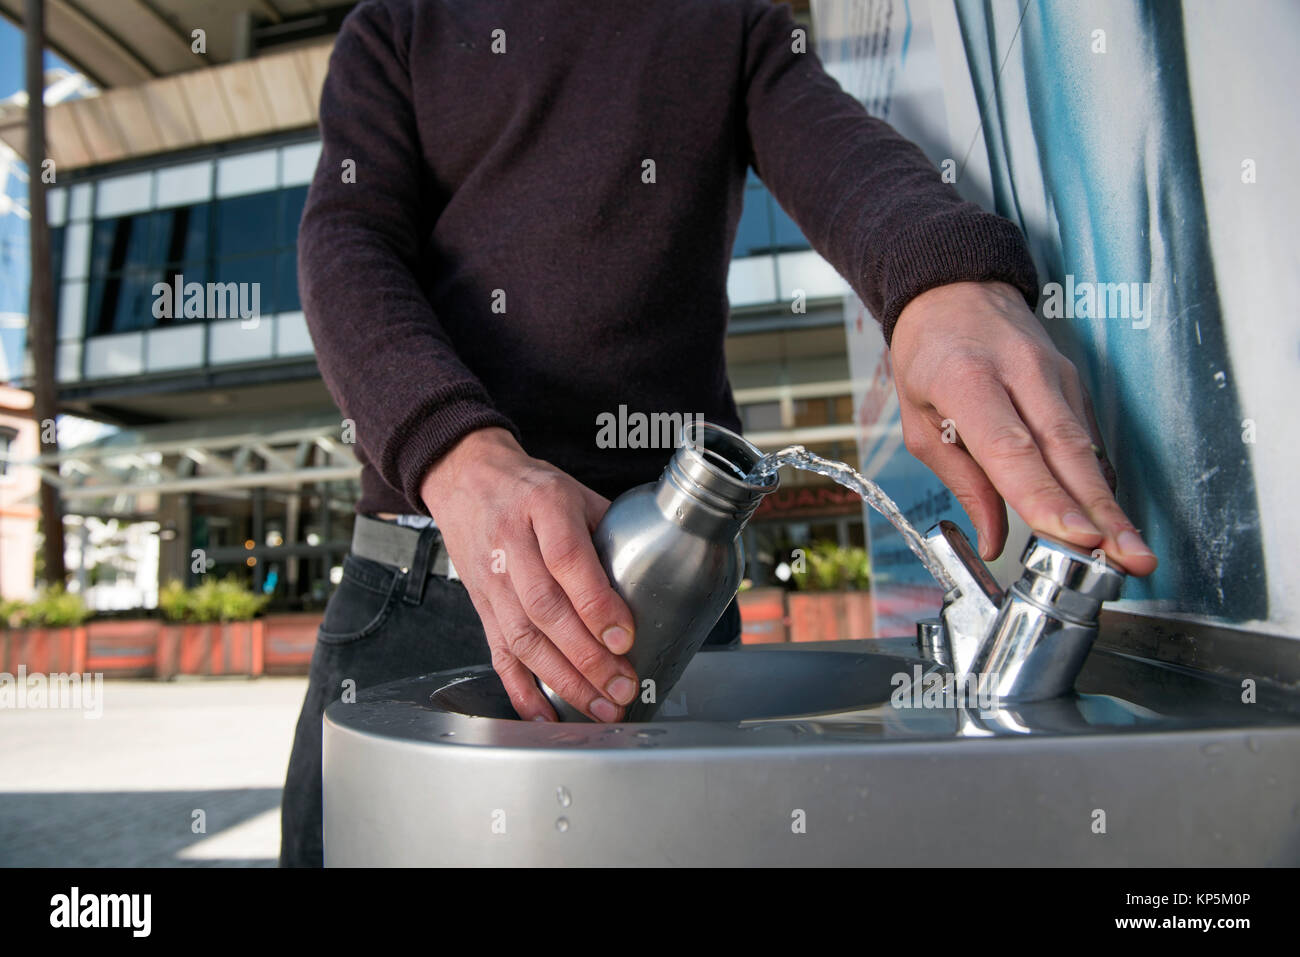 'City To Sea', a campaign to rid Bristol of plastic bottle waste - a student refills his water bottle in Millennium - Stock Image